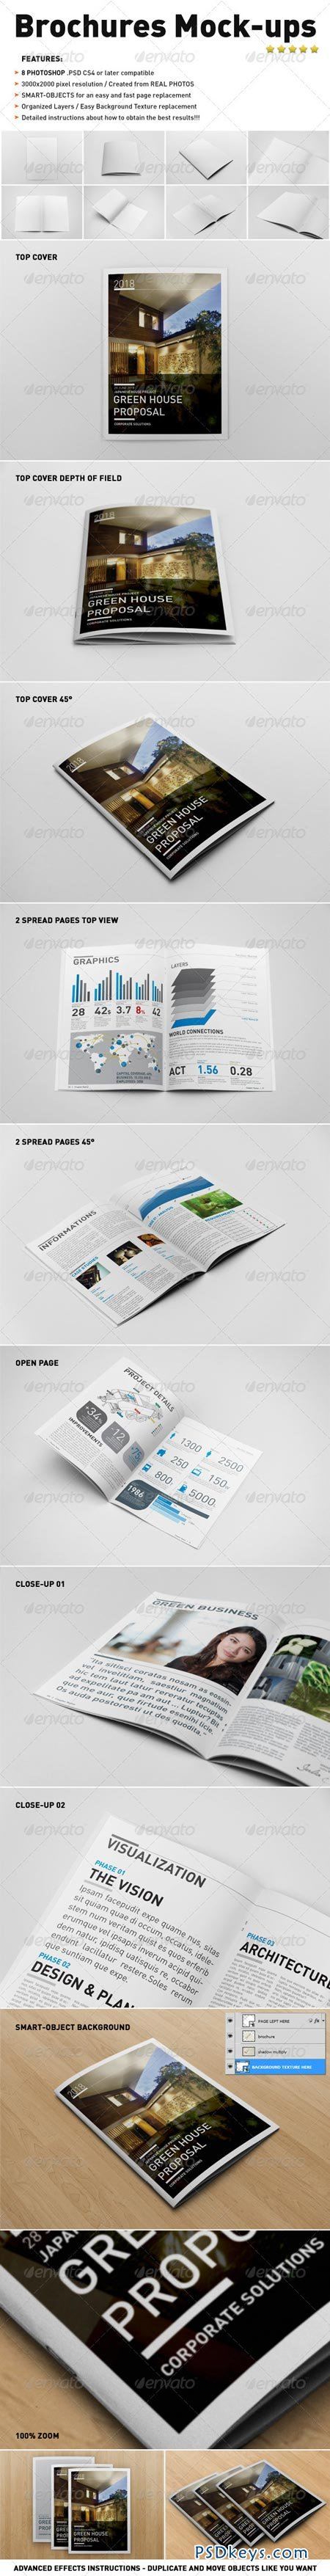 Photorealistic Brochure Mock-ups 3544158